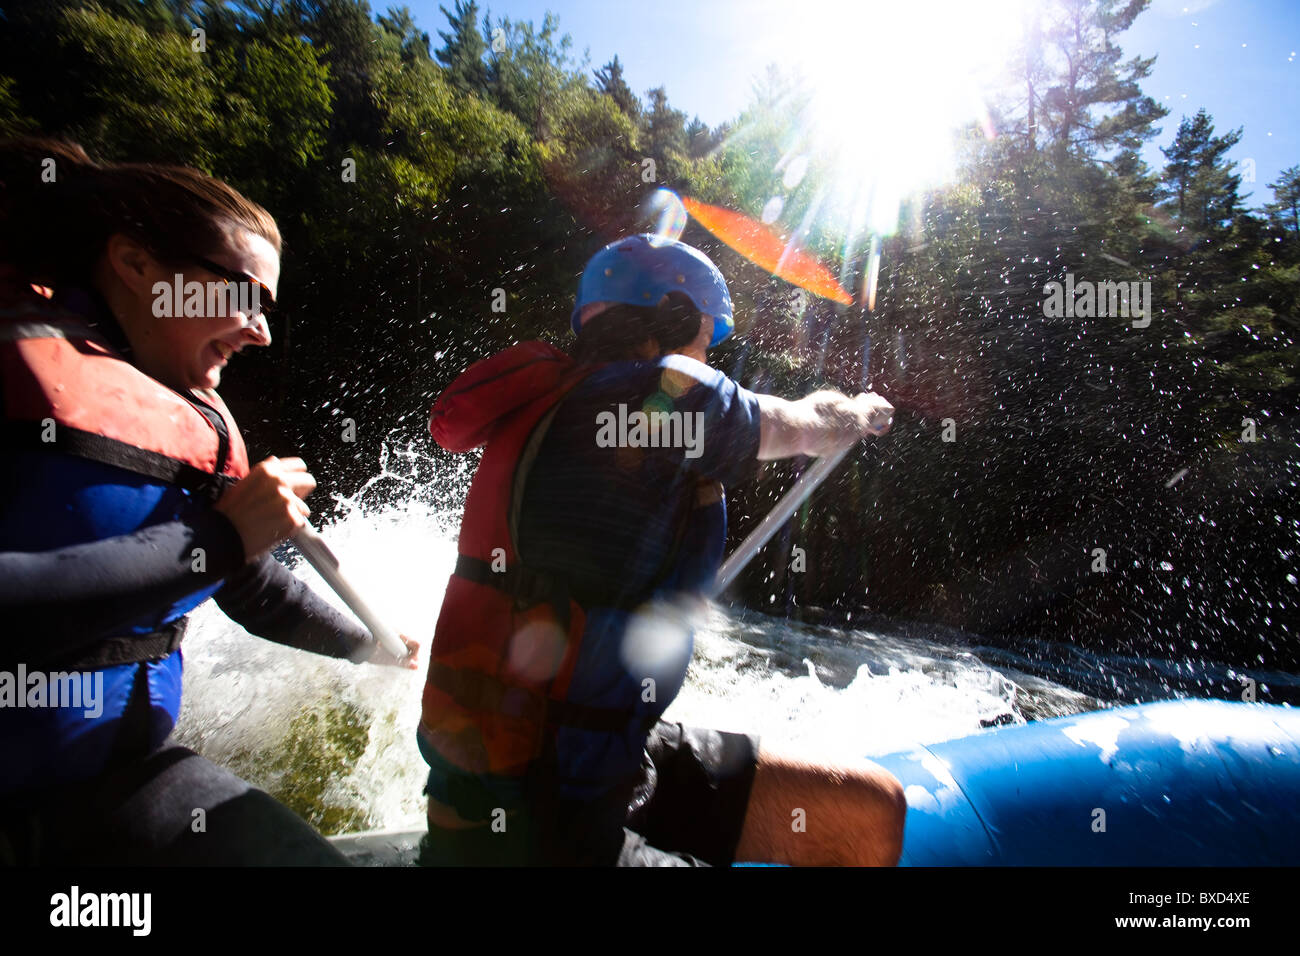 A group of adults whitewater rafting in Maine Stock Photo